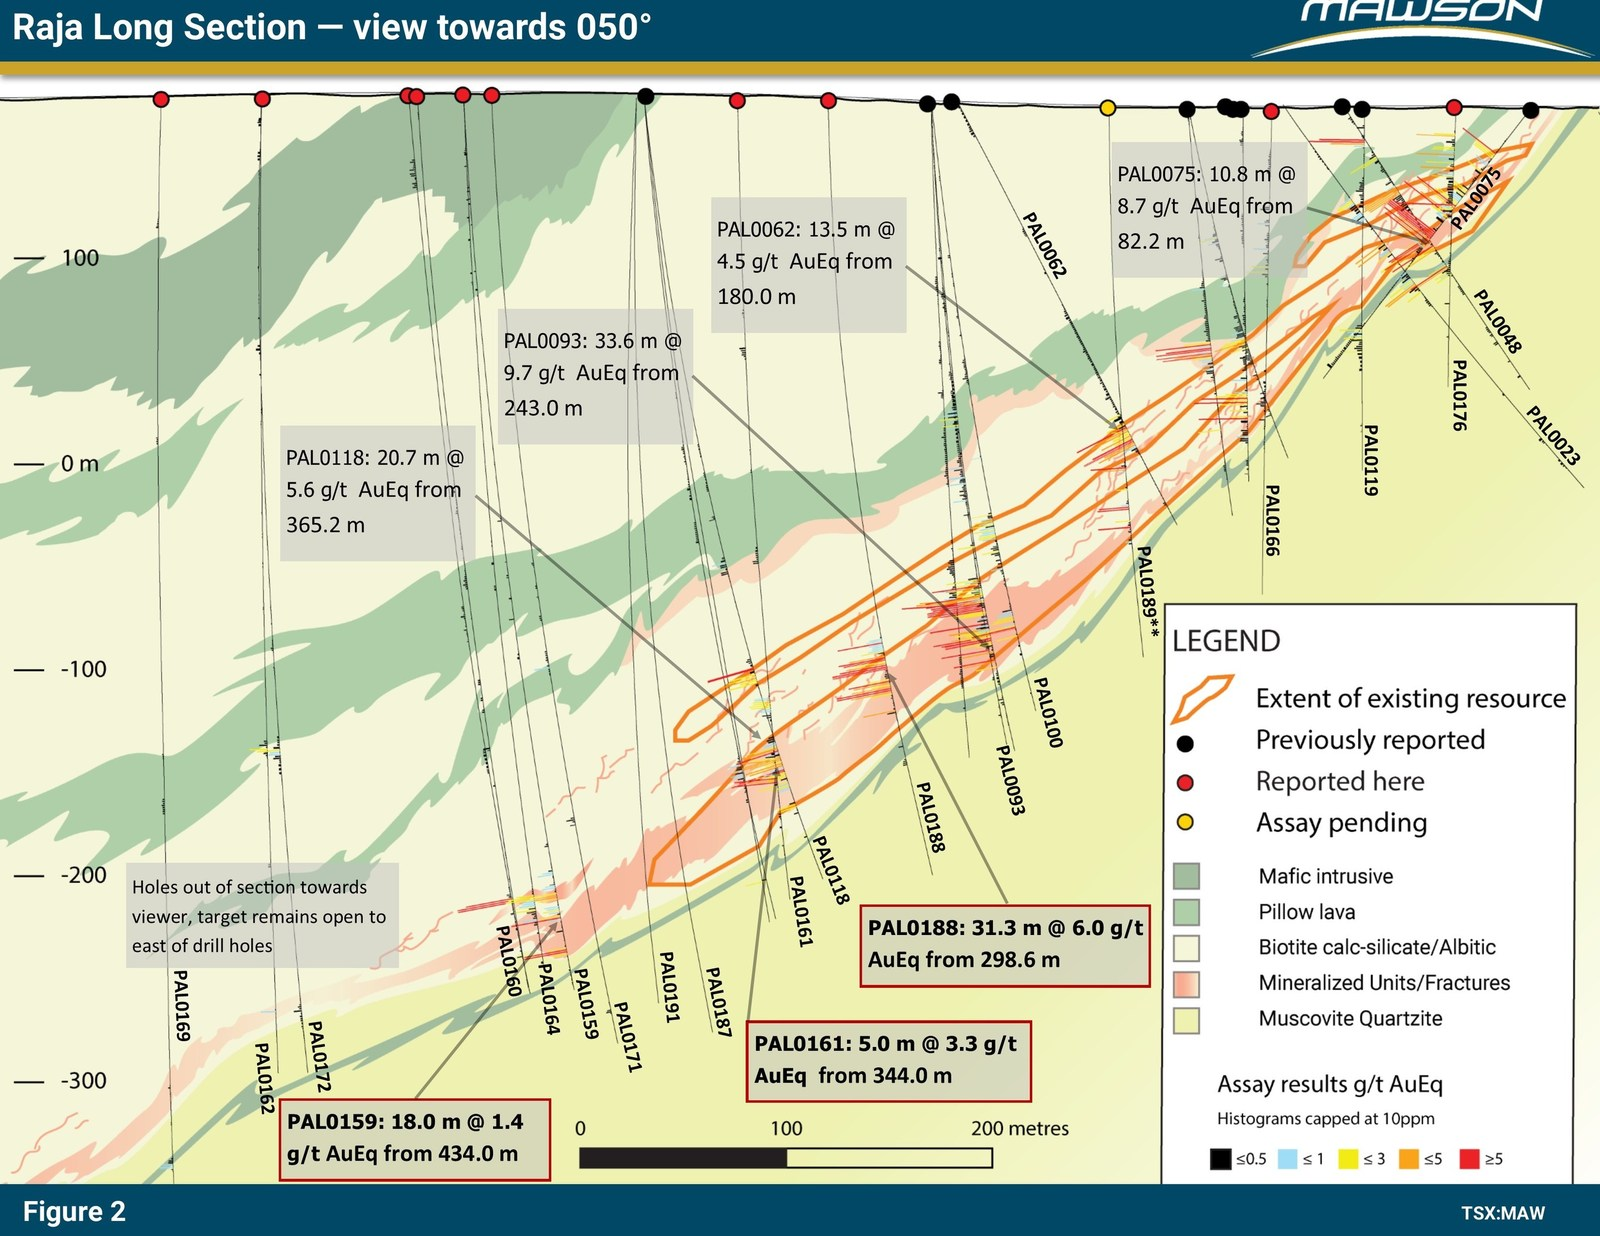 Figure 2: Long section at Raja prospect showing continuation of mineralized sequence below existing resource. Outlines of existing resource are also indicated. Note newly reported results in text boxes with bold and red outlines. Some of the more significant intersections from the last 3 years are also included.